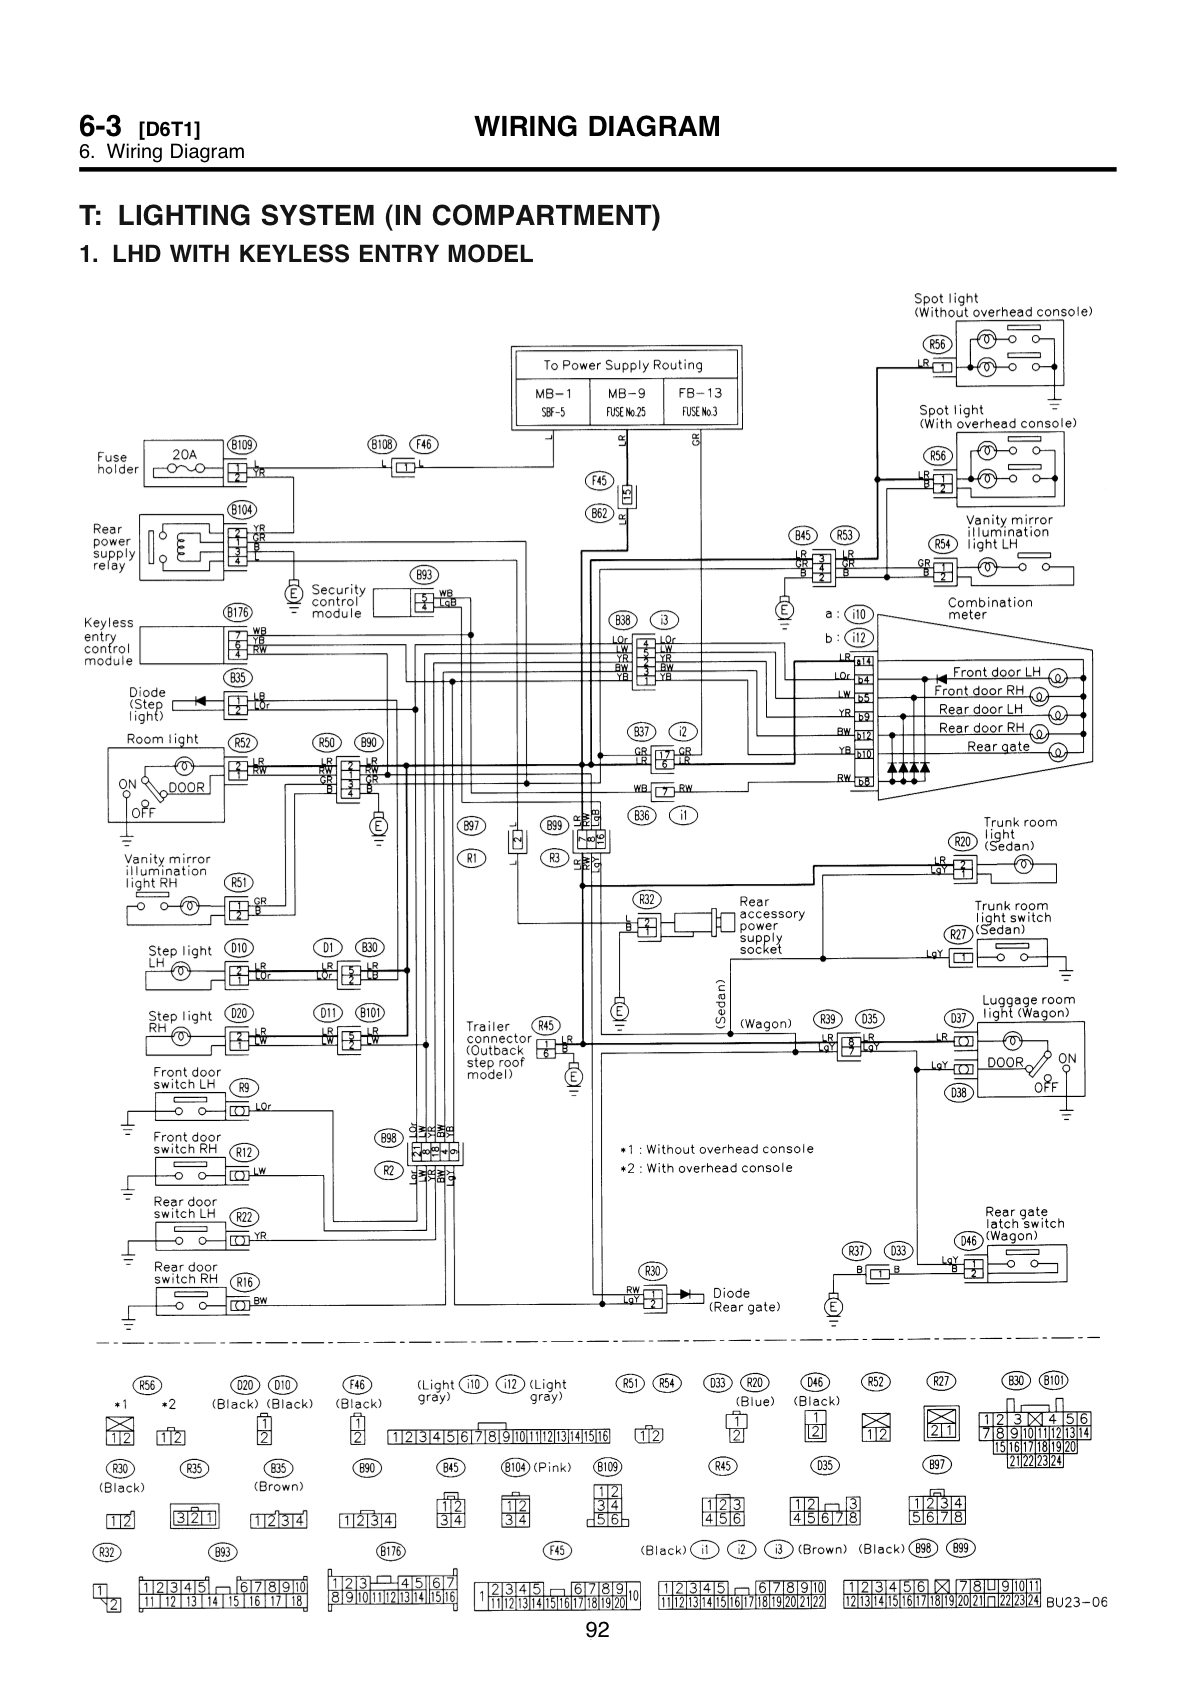 wiring_diagram1?resize\=840%2C1187 diagrams 554363 kramer single humbucker wiring diagram kramer kramer pacer wiring diagram at soozxer.org